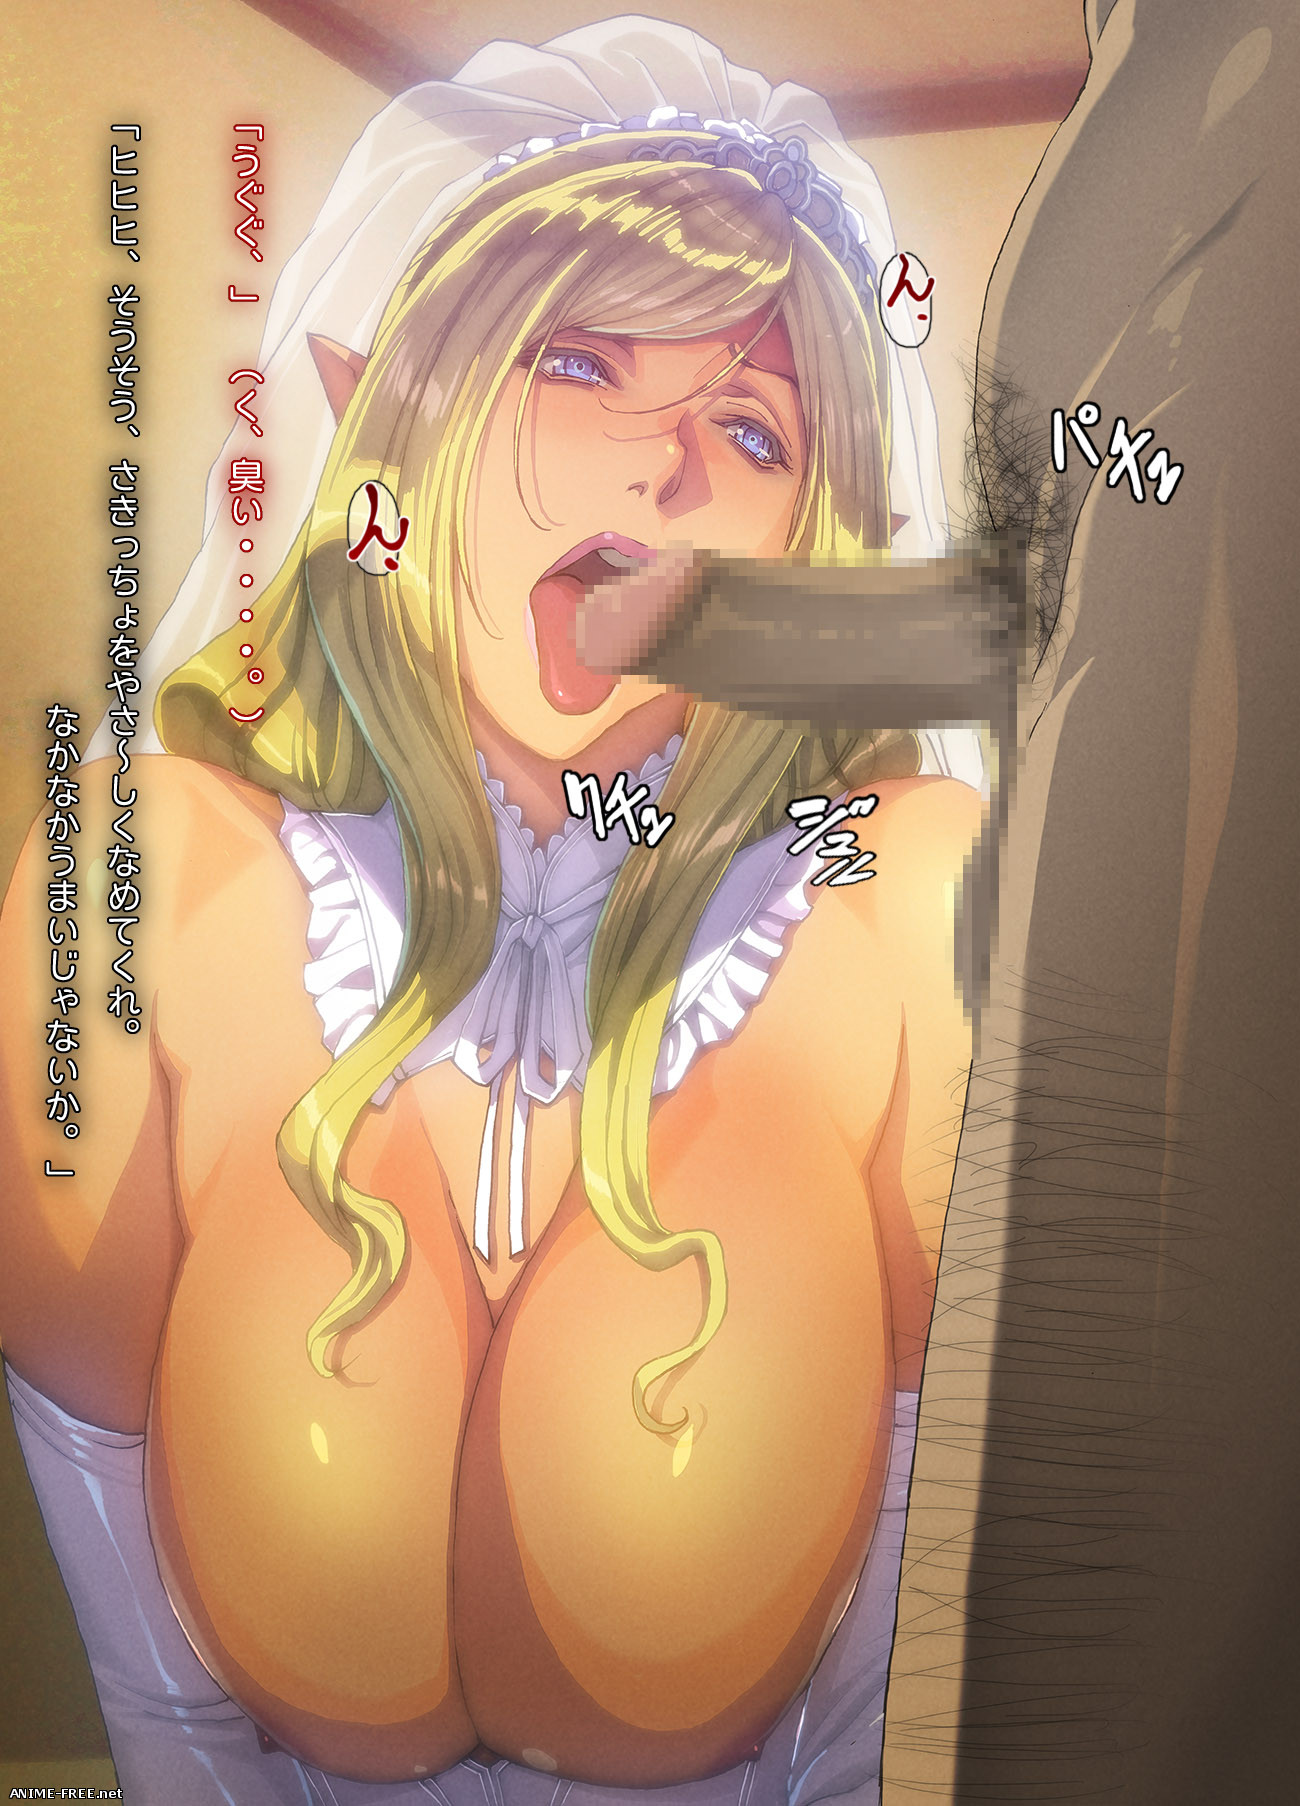 Homare / Homare Dou / Fool's Art Gallery - CG collection / Сборник работ [Cen] [JPG] Hentai ART